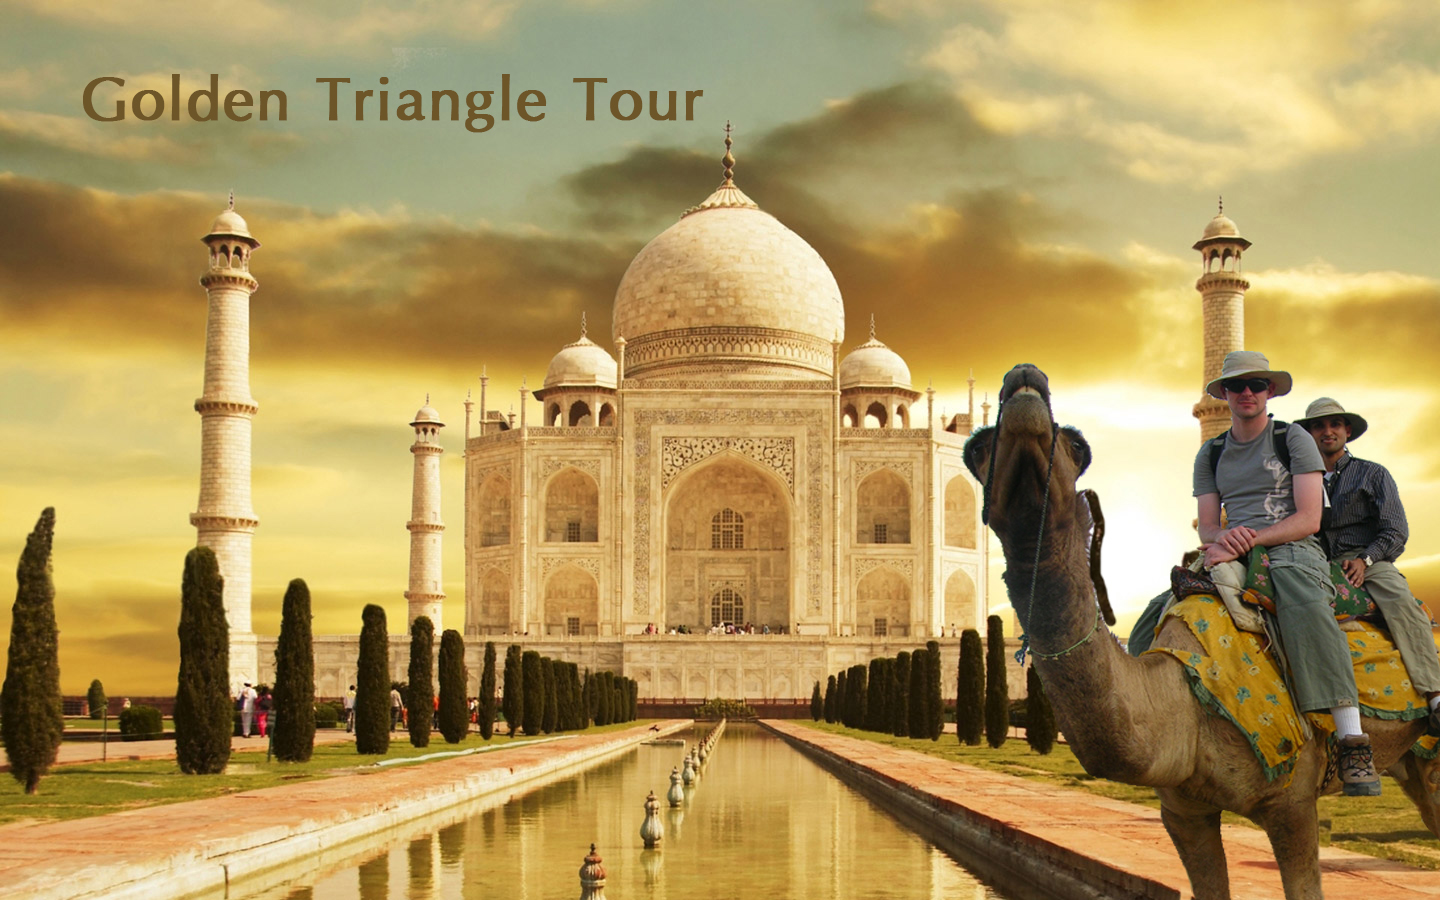 Enjoy with Golden Triangle Tour India